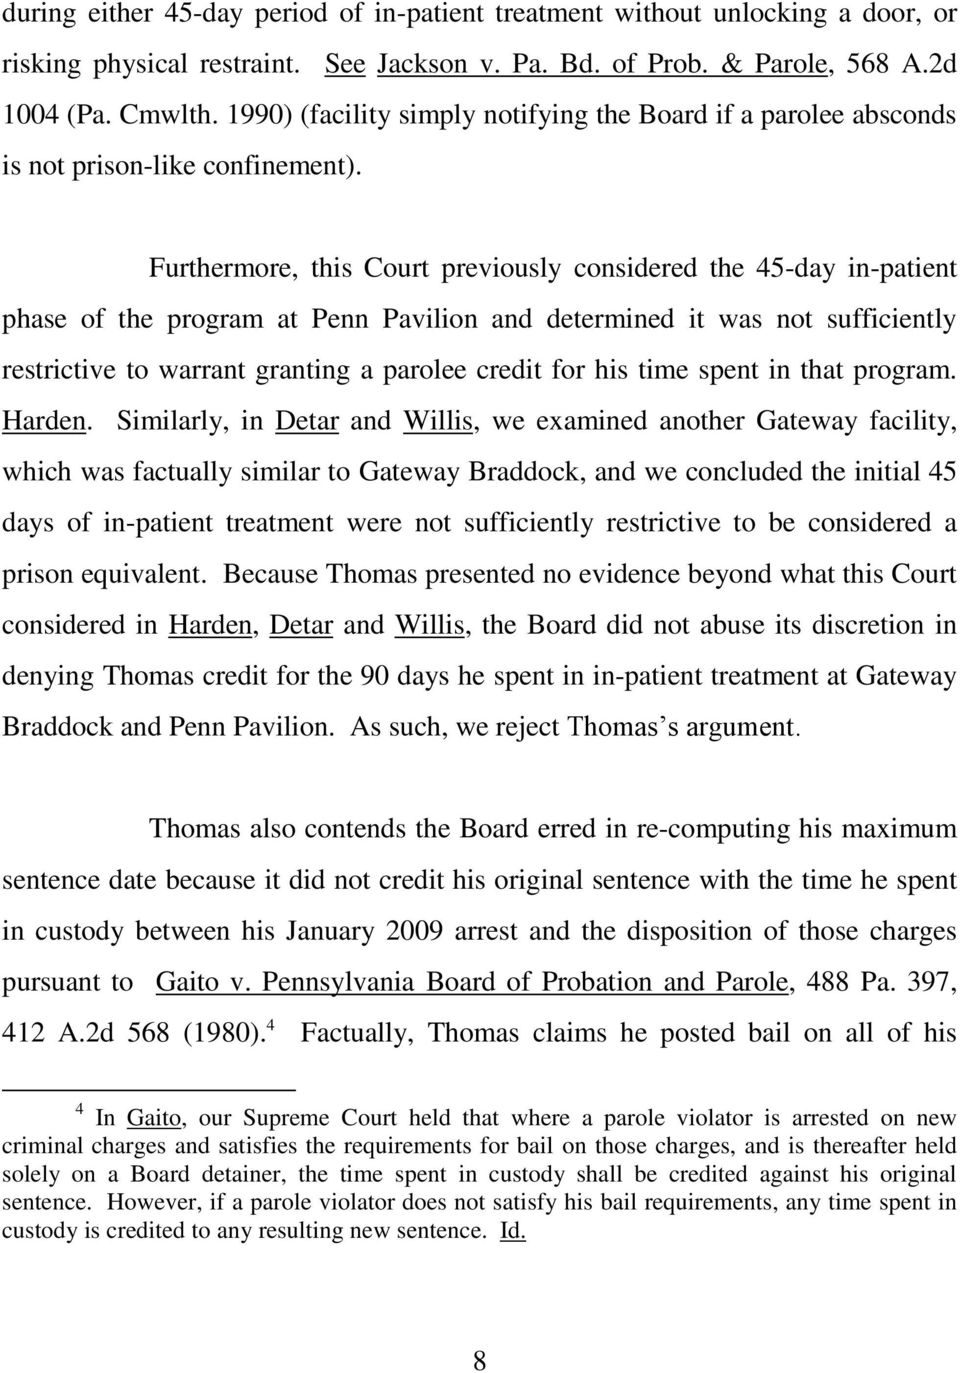 Furthermore, this Court previously considered the 45-day in-patient phase of the program at Penn Pavilion and determined it was not sufficiently restrictive to warrant granting a parolee credit for